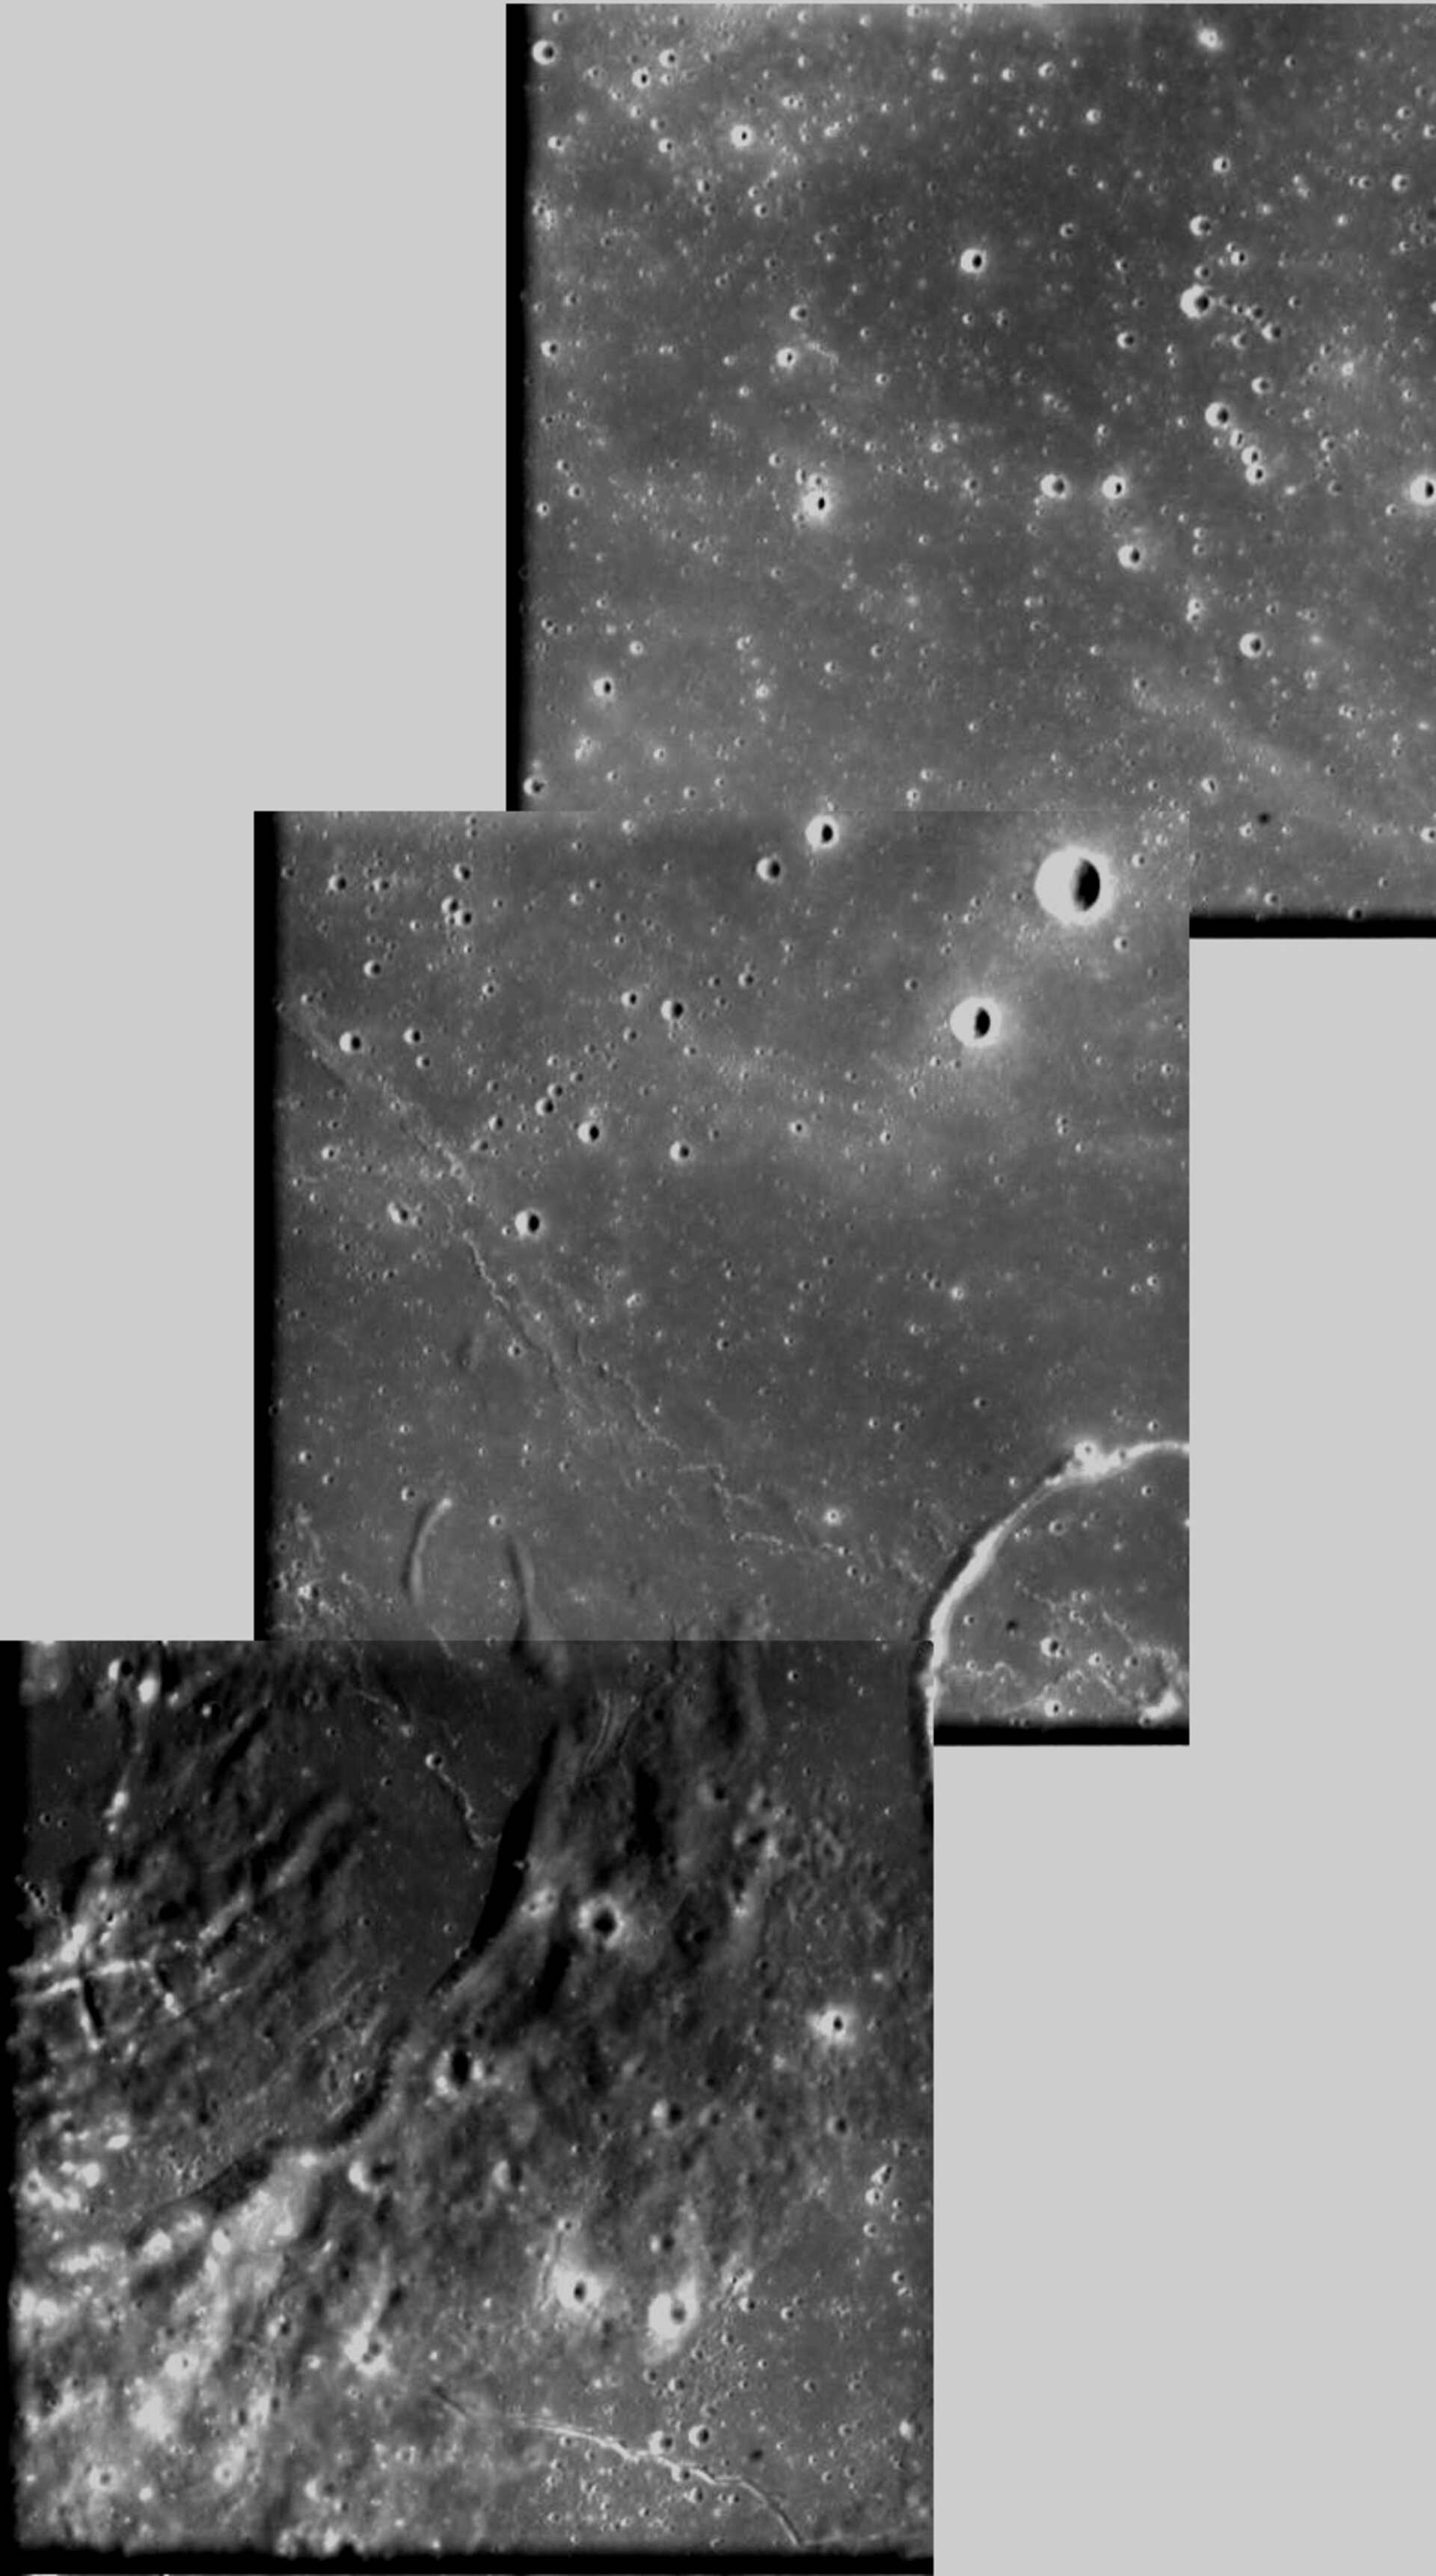 A view of Mare Humorum from SMART-1